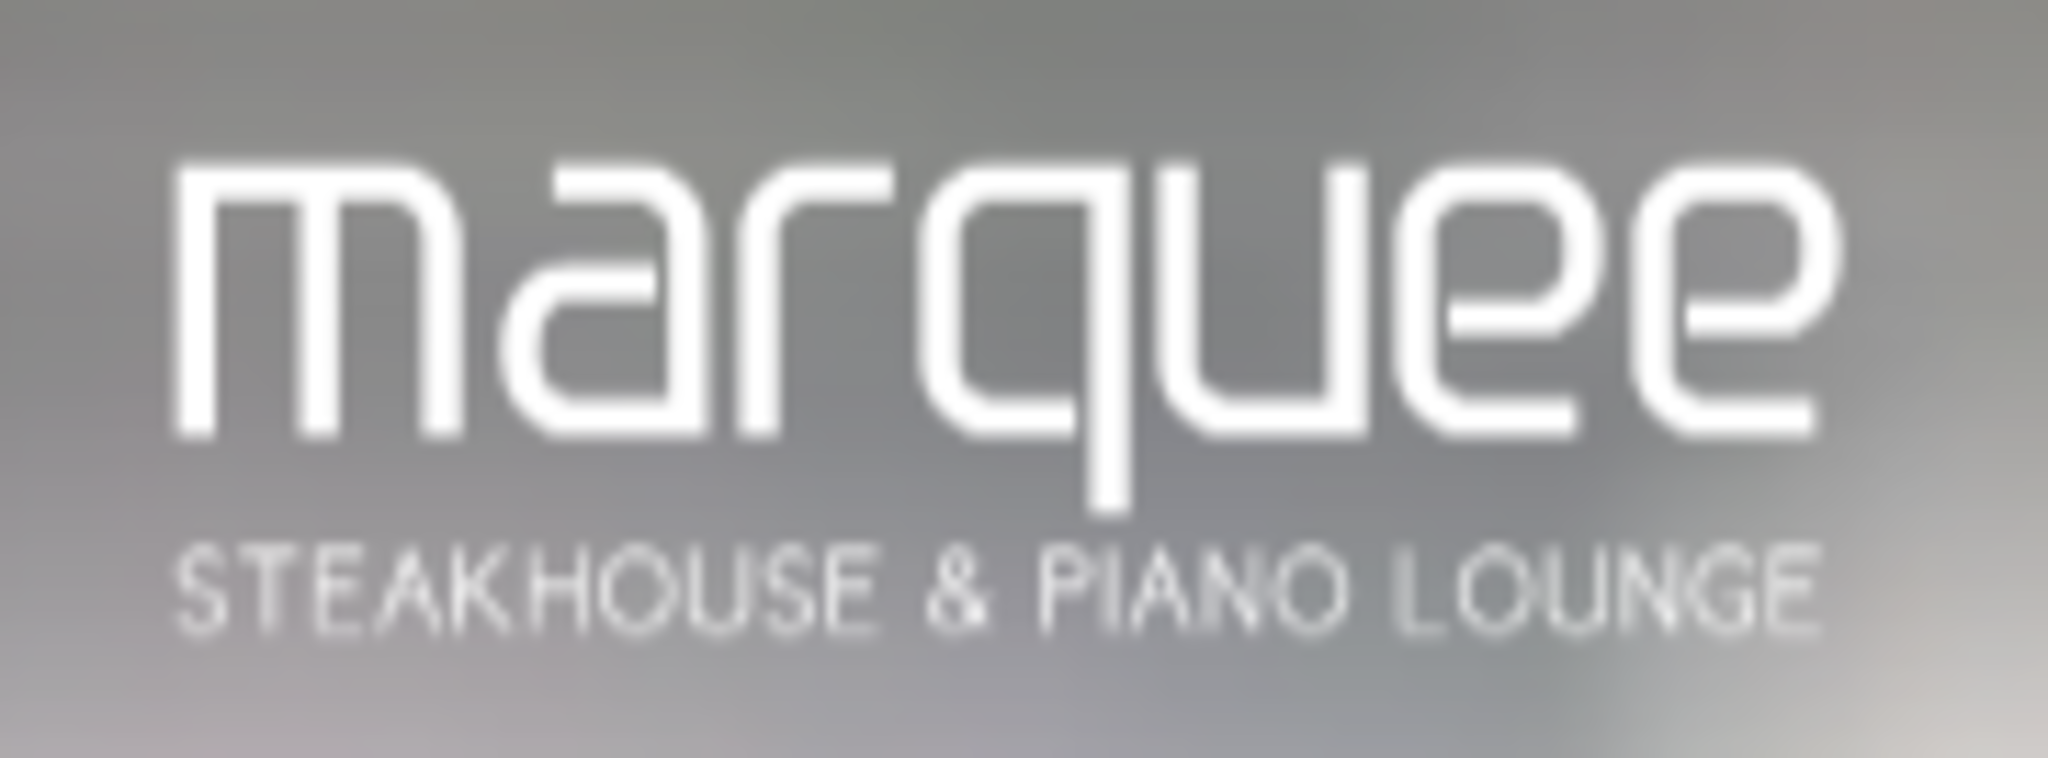 Marquee Steakhouse & Piano Lounge